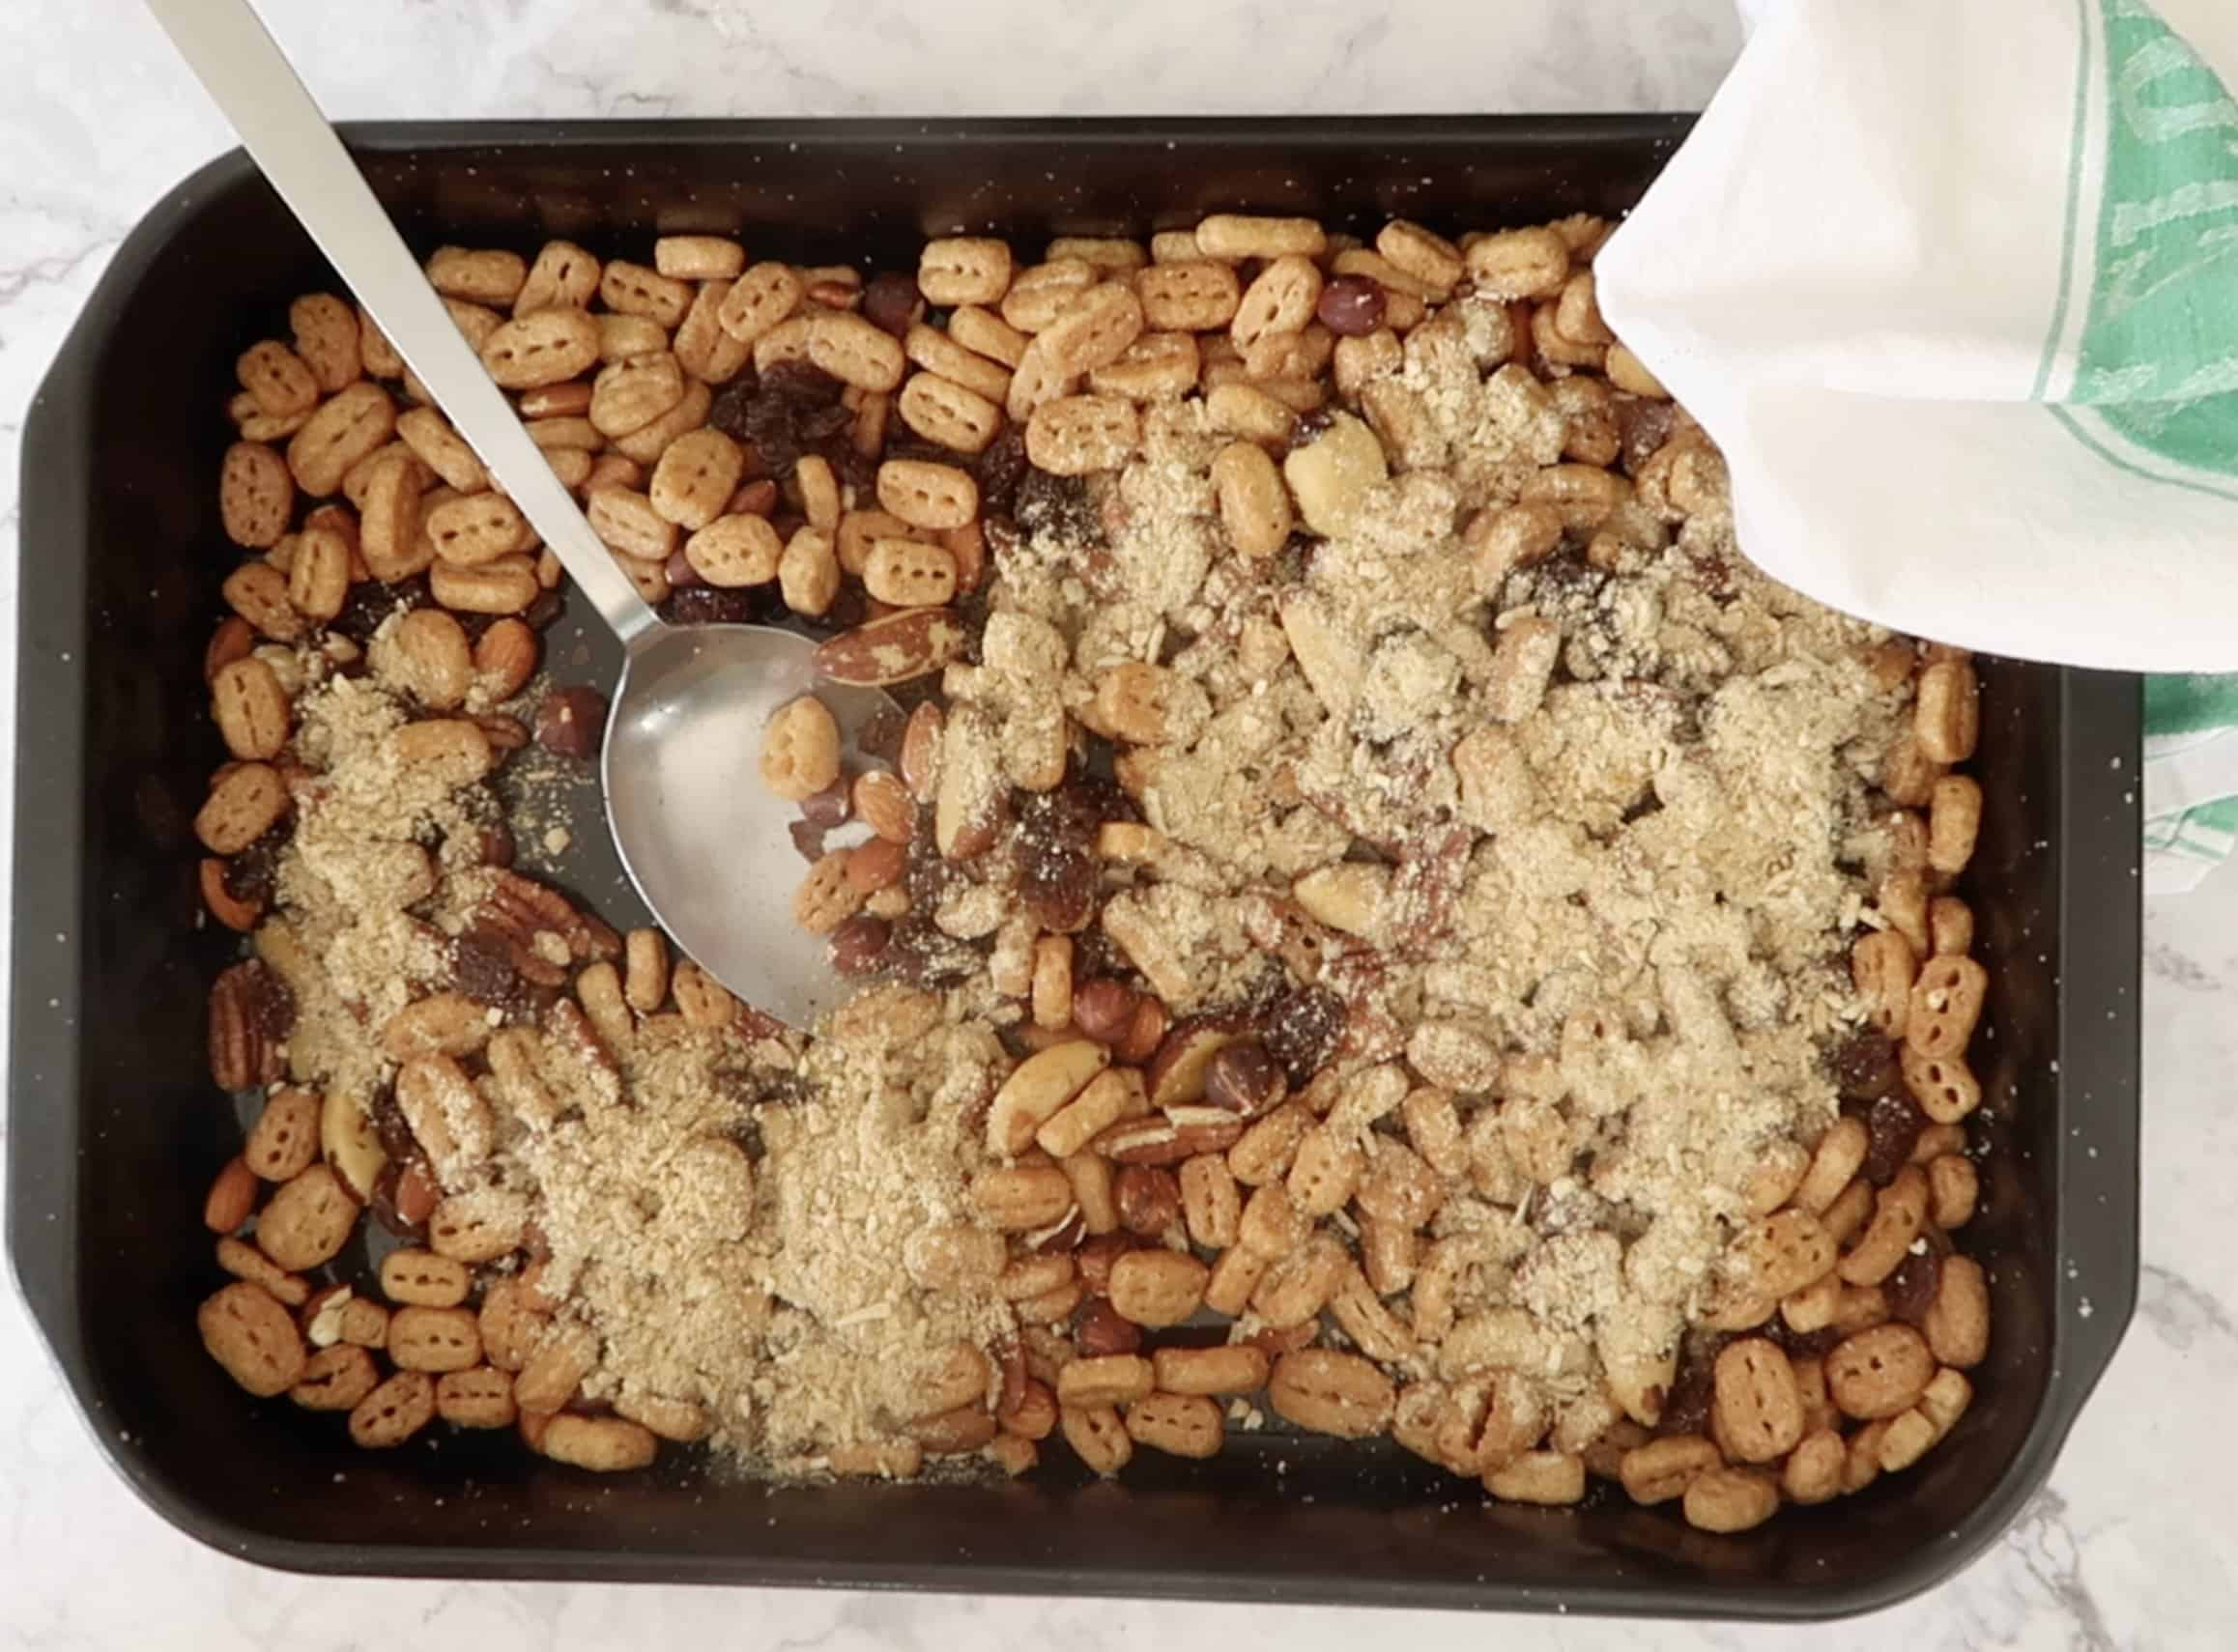 dish of roasted Nutrigrain with a metal spoon and mixed nuts, raisins and the seasoning mix added to make nuts and bolts